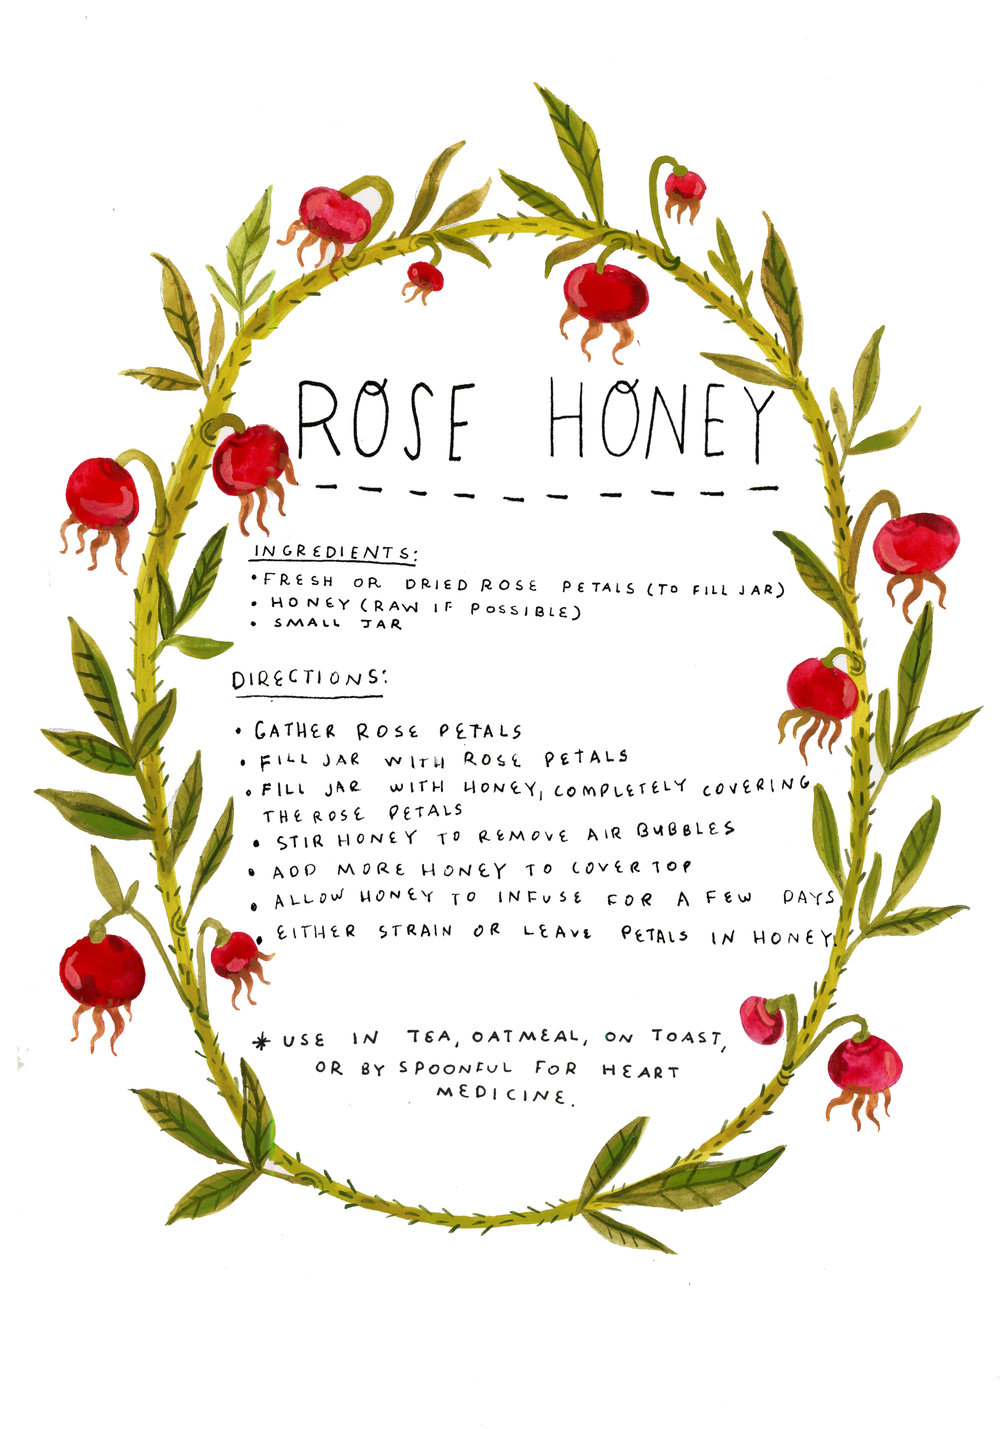 rosehoney.jpg